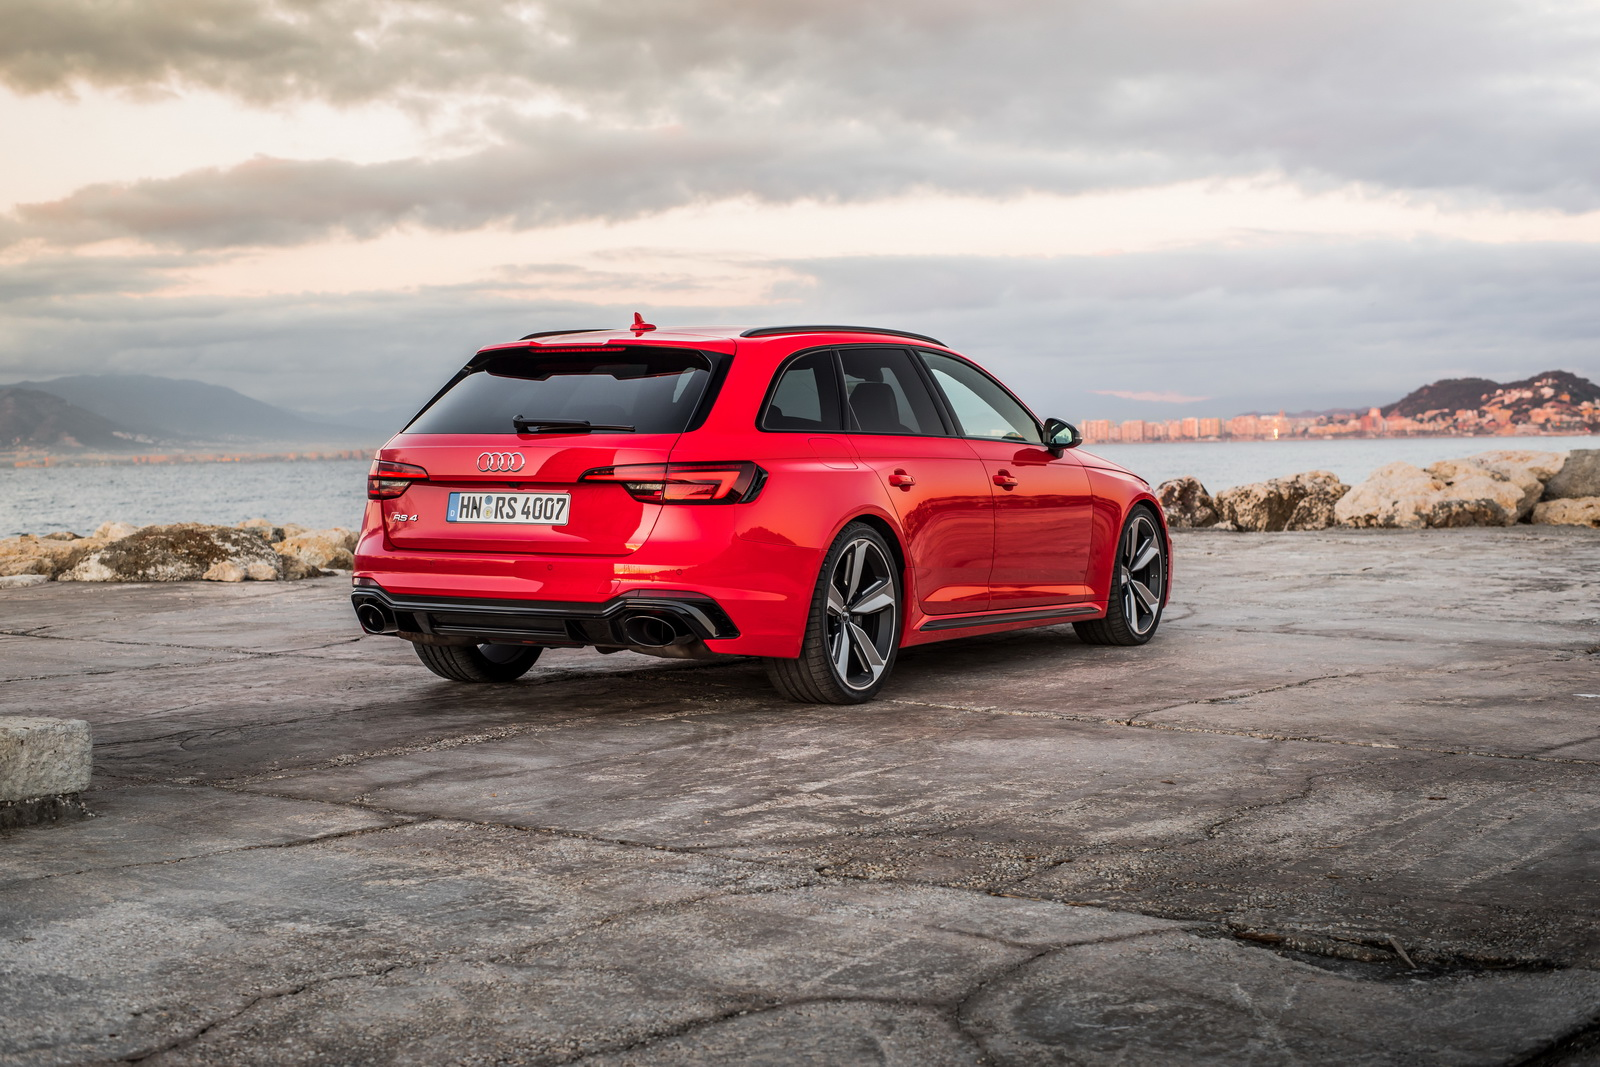 2018 Audi Rs4 Avant Detailed In New Gallery 66 Pics Carscoops